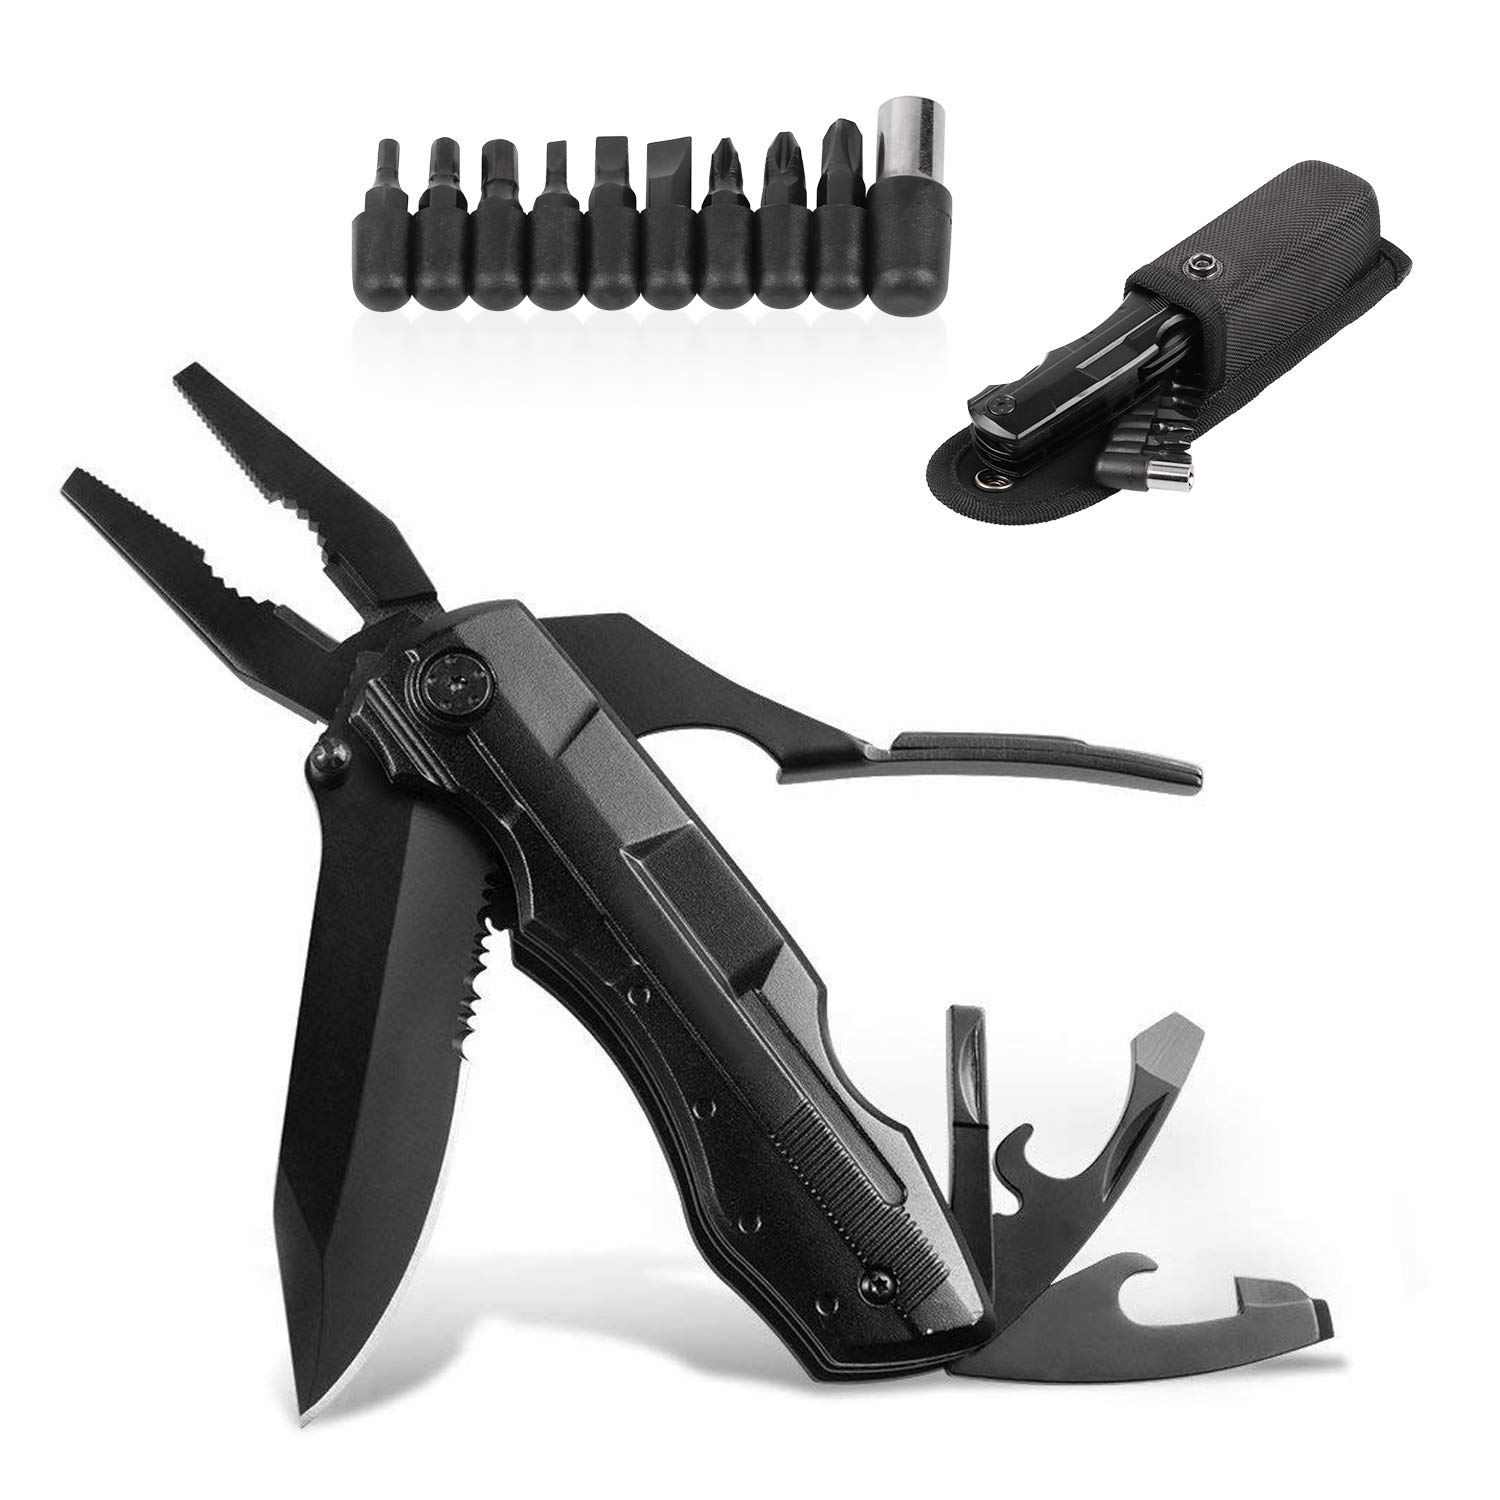 GETUHAND Multitool Pocket Knife 8-in-1 Multipurpose Tool with Folding Knife Pliers,Sheath and Bit Set Kit in Durable Black Oxide Stainless Steel for Hiker, Hunter, Solid Reliable Multipurpose Knife